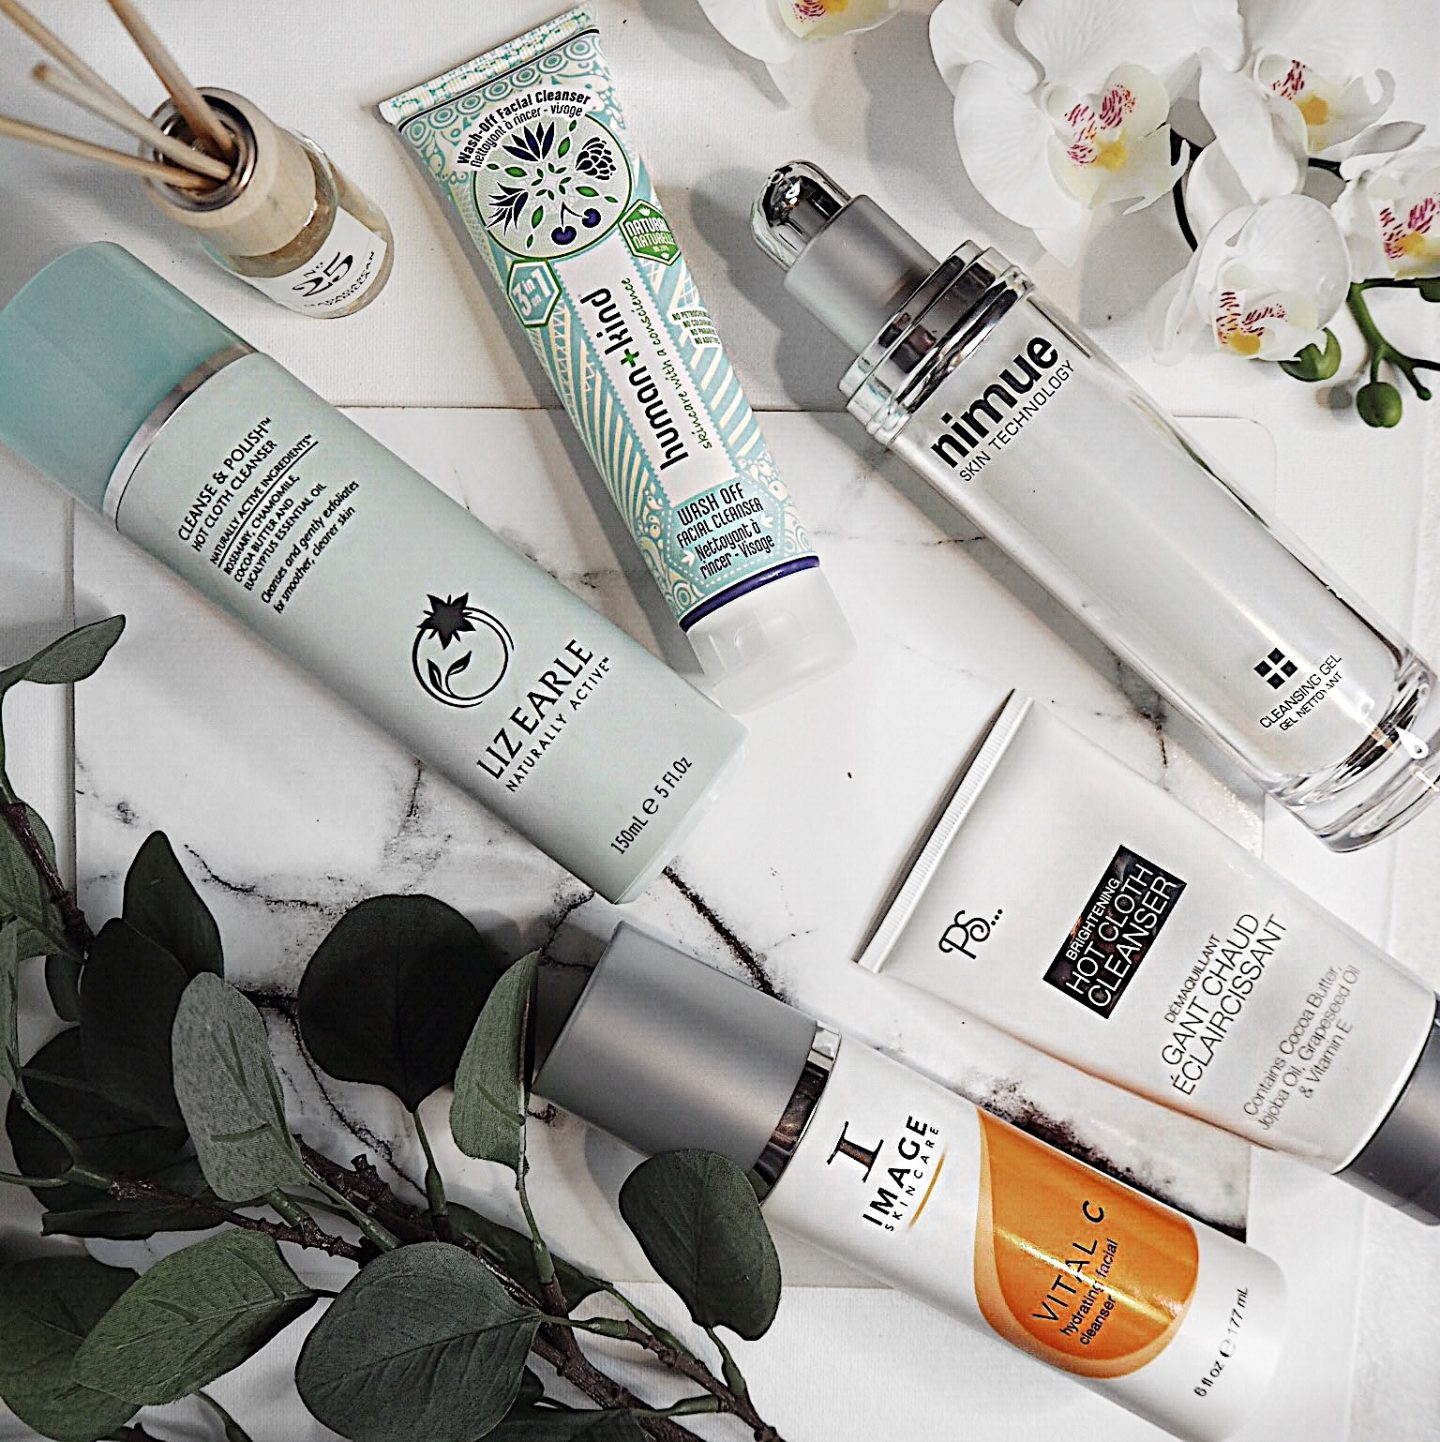 cleansers review nimue image skincare human and kind primark beauty liz earle dermalogica bioderma